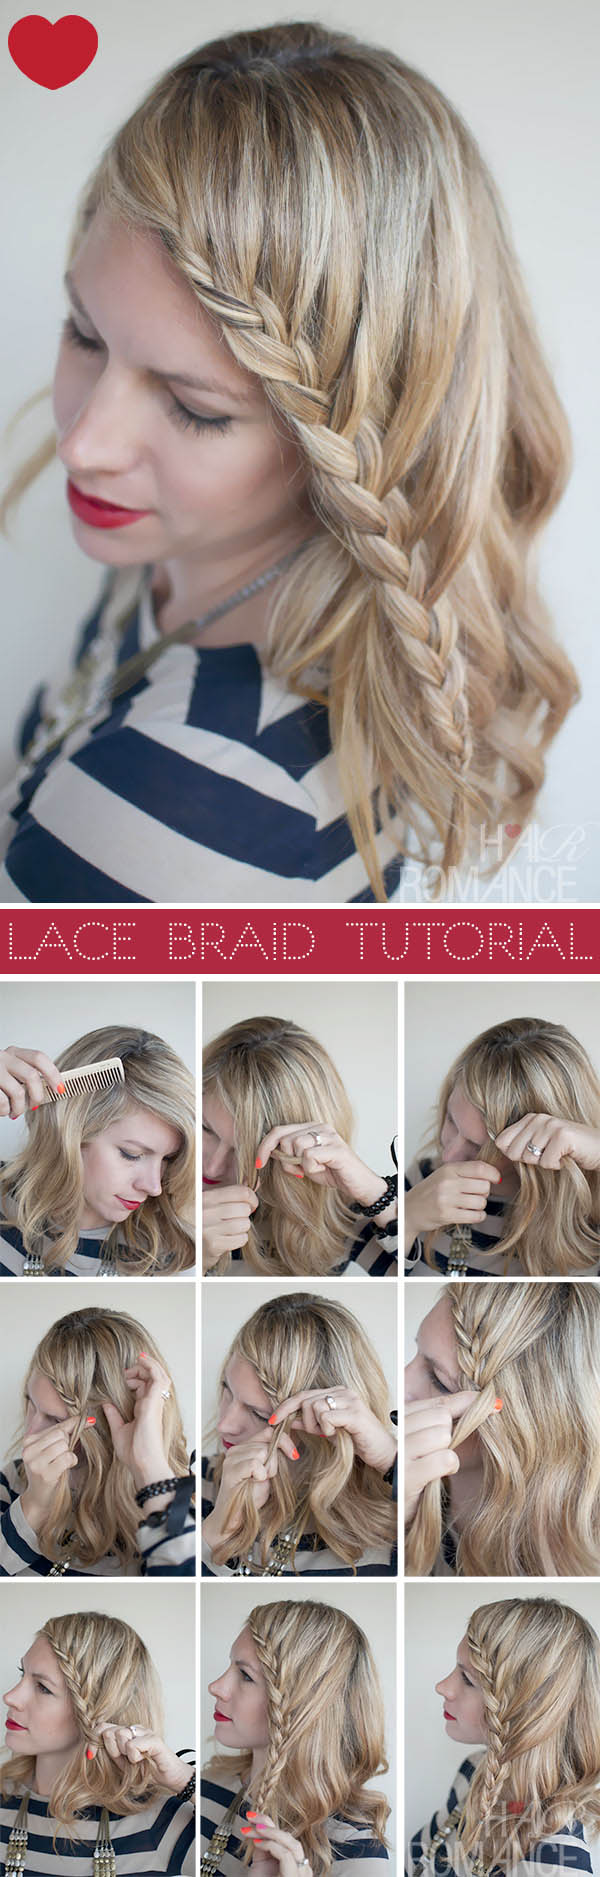 Peachy 20 Most Beautiful Braided Hairstyle Tutorials For 2014 Pretty Hairstyle Inspiration Daily Dogsangcom